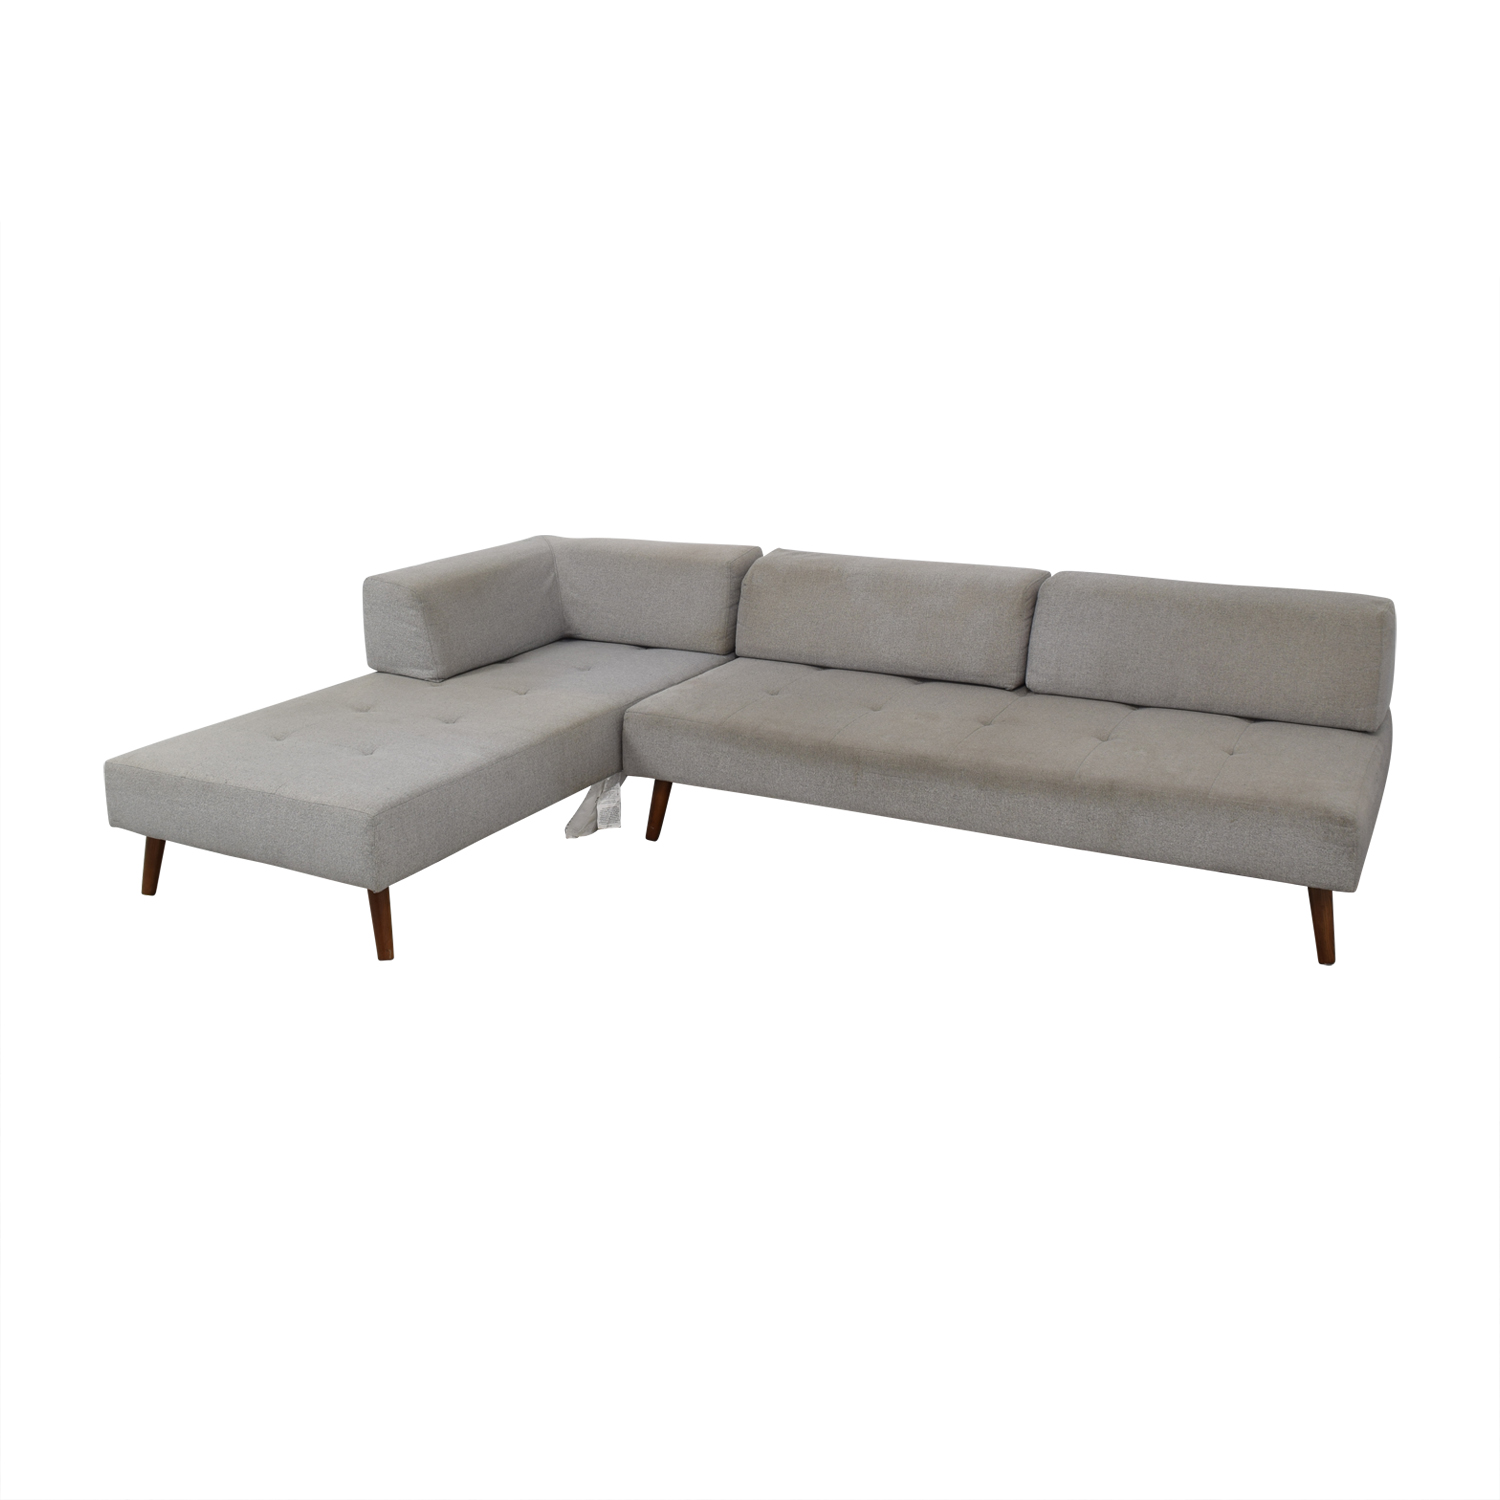 West Elm West Elm Sectional Couch used